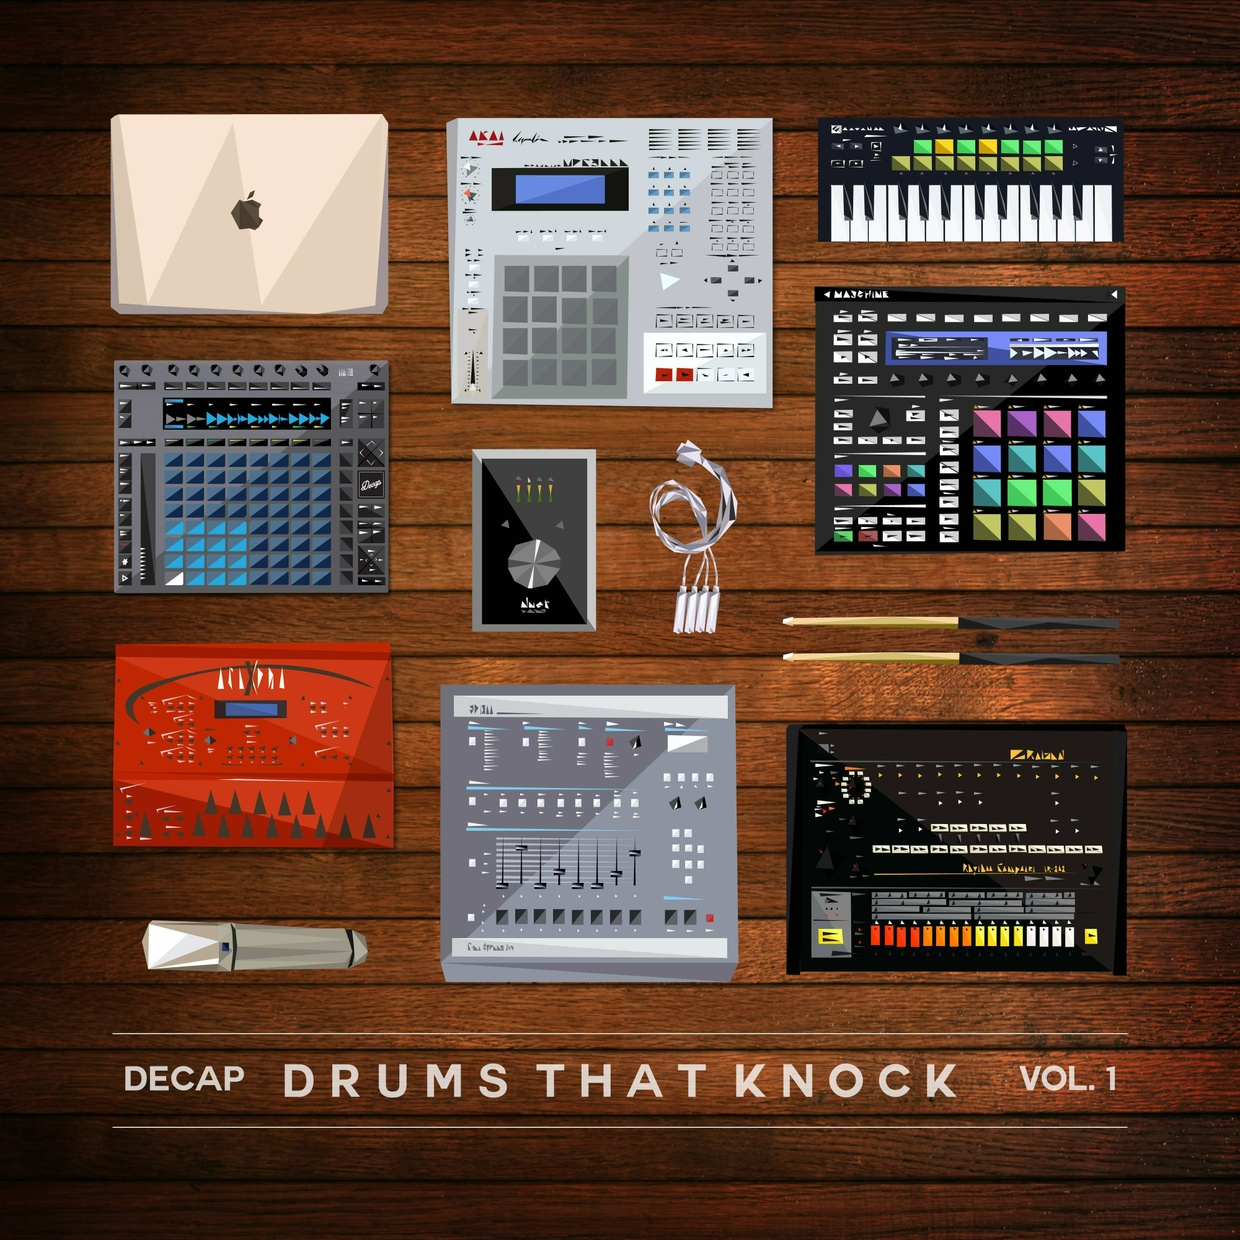 Drums That Knock Vol. 1 & Vol. 2 (Limited Edition Bundle)